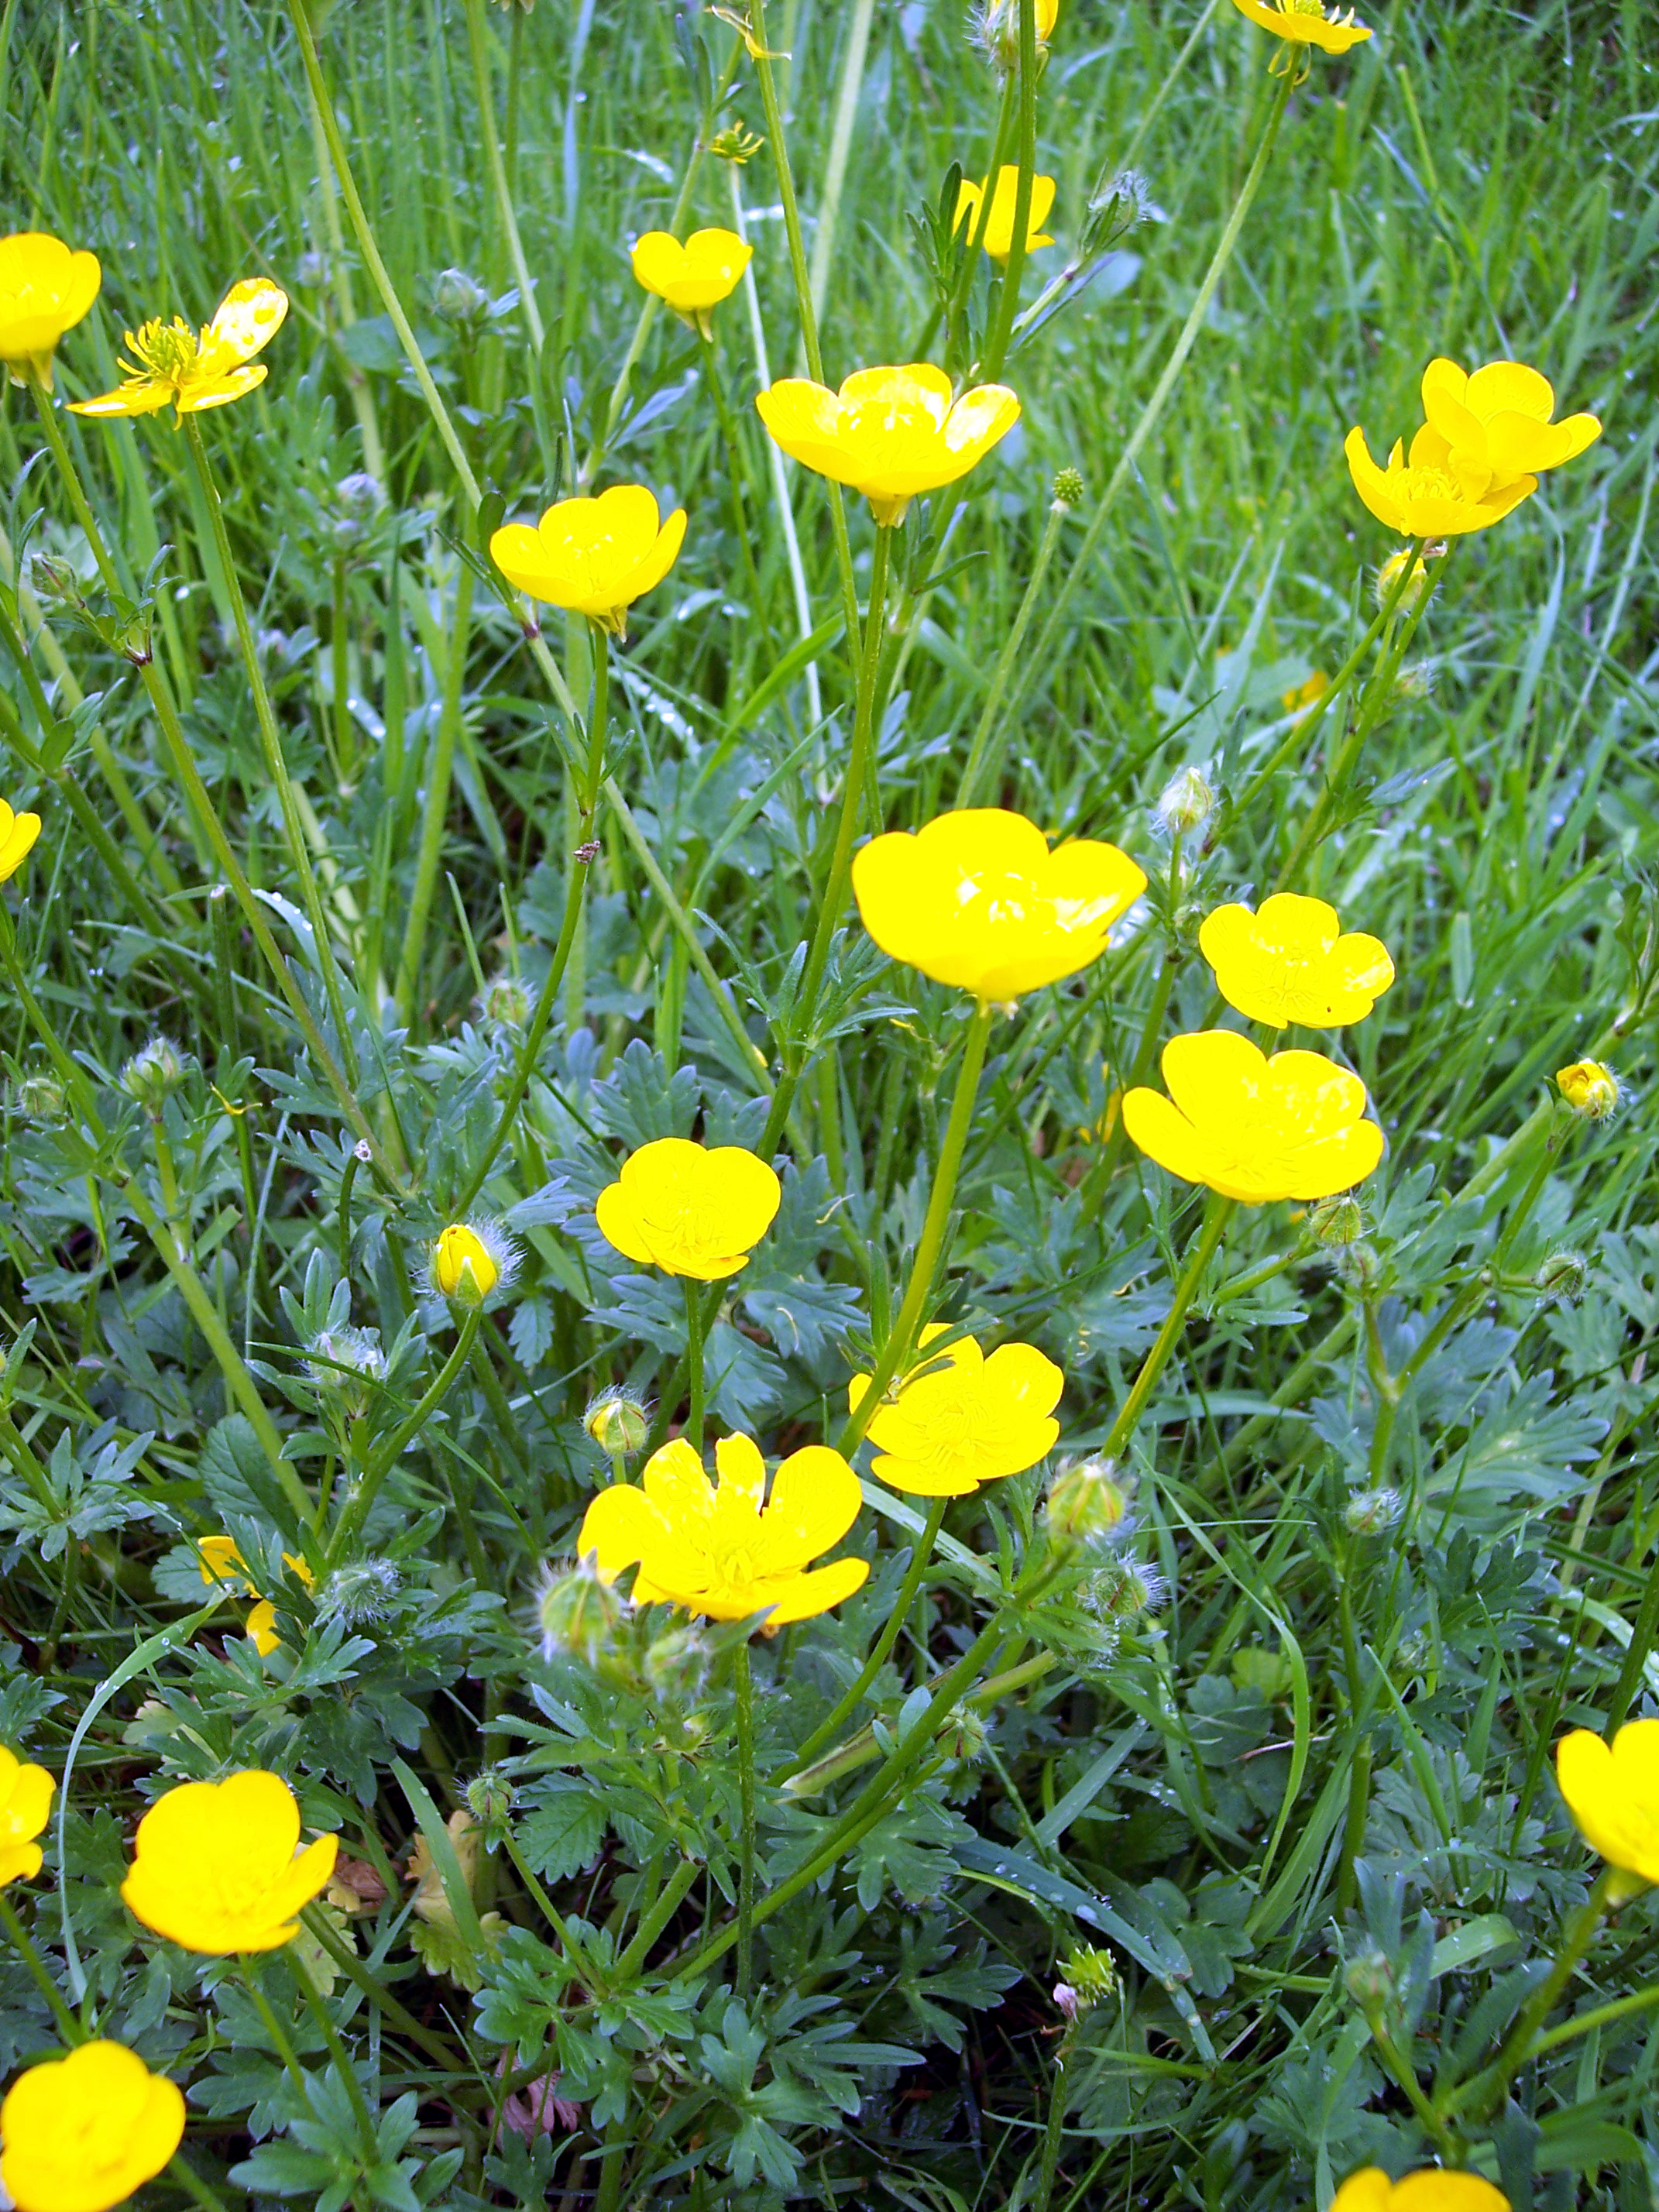 This plant looks similar the the creeping buttercup but has bent back sepals, a swollen bulbous base to the stem and the middle leaflet is stalked.